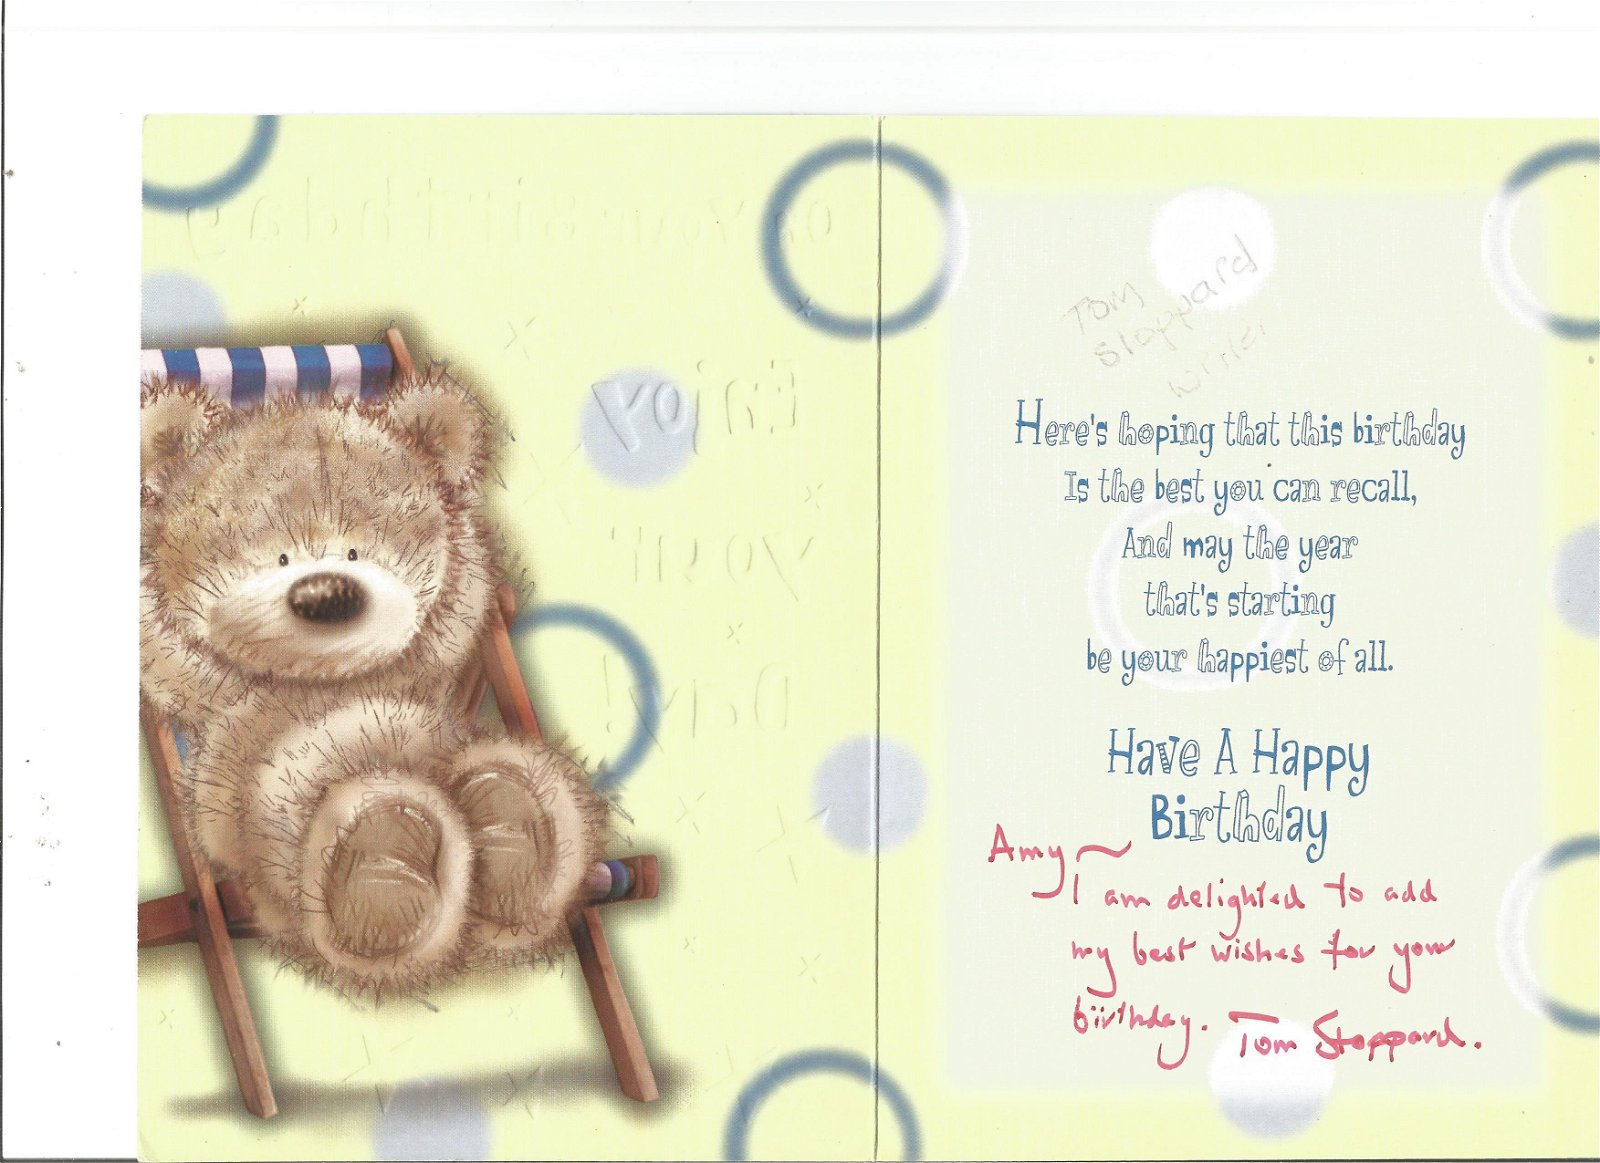 Tom Stoppard signed birthday card. Good Condition. All